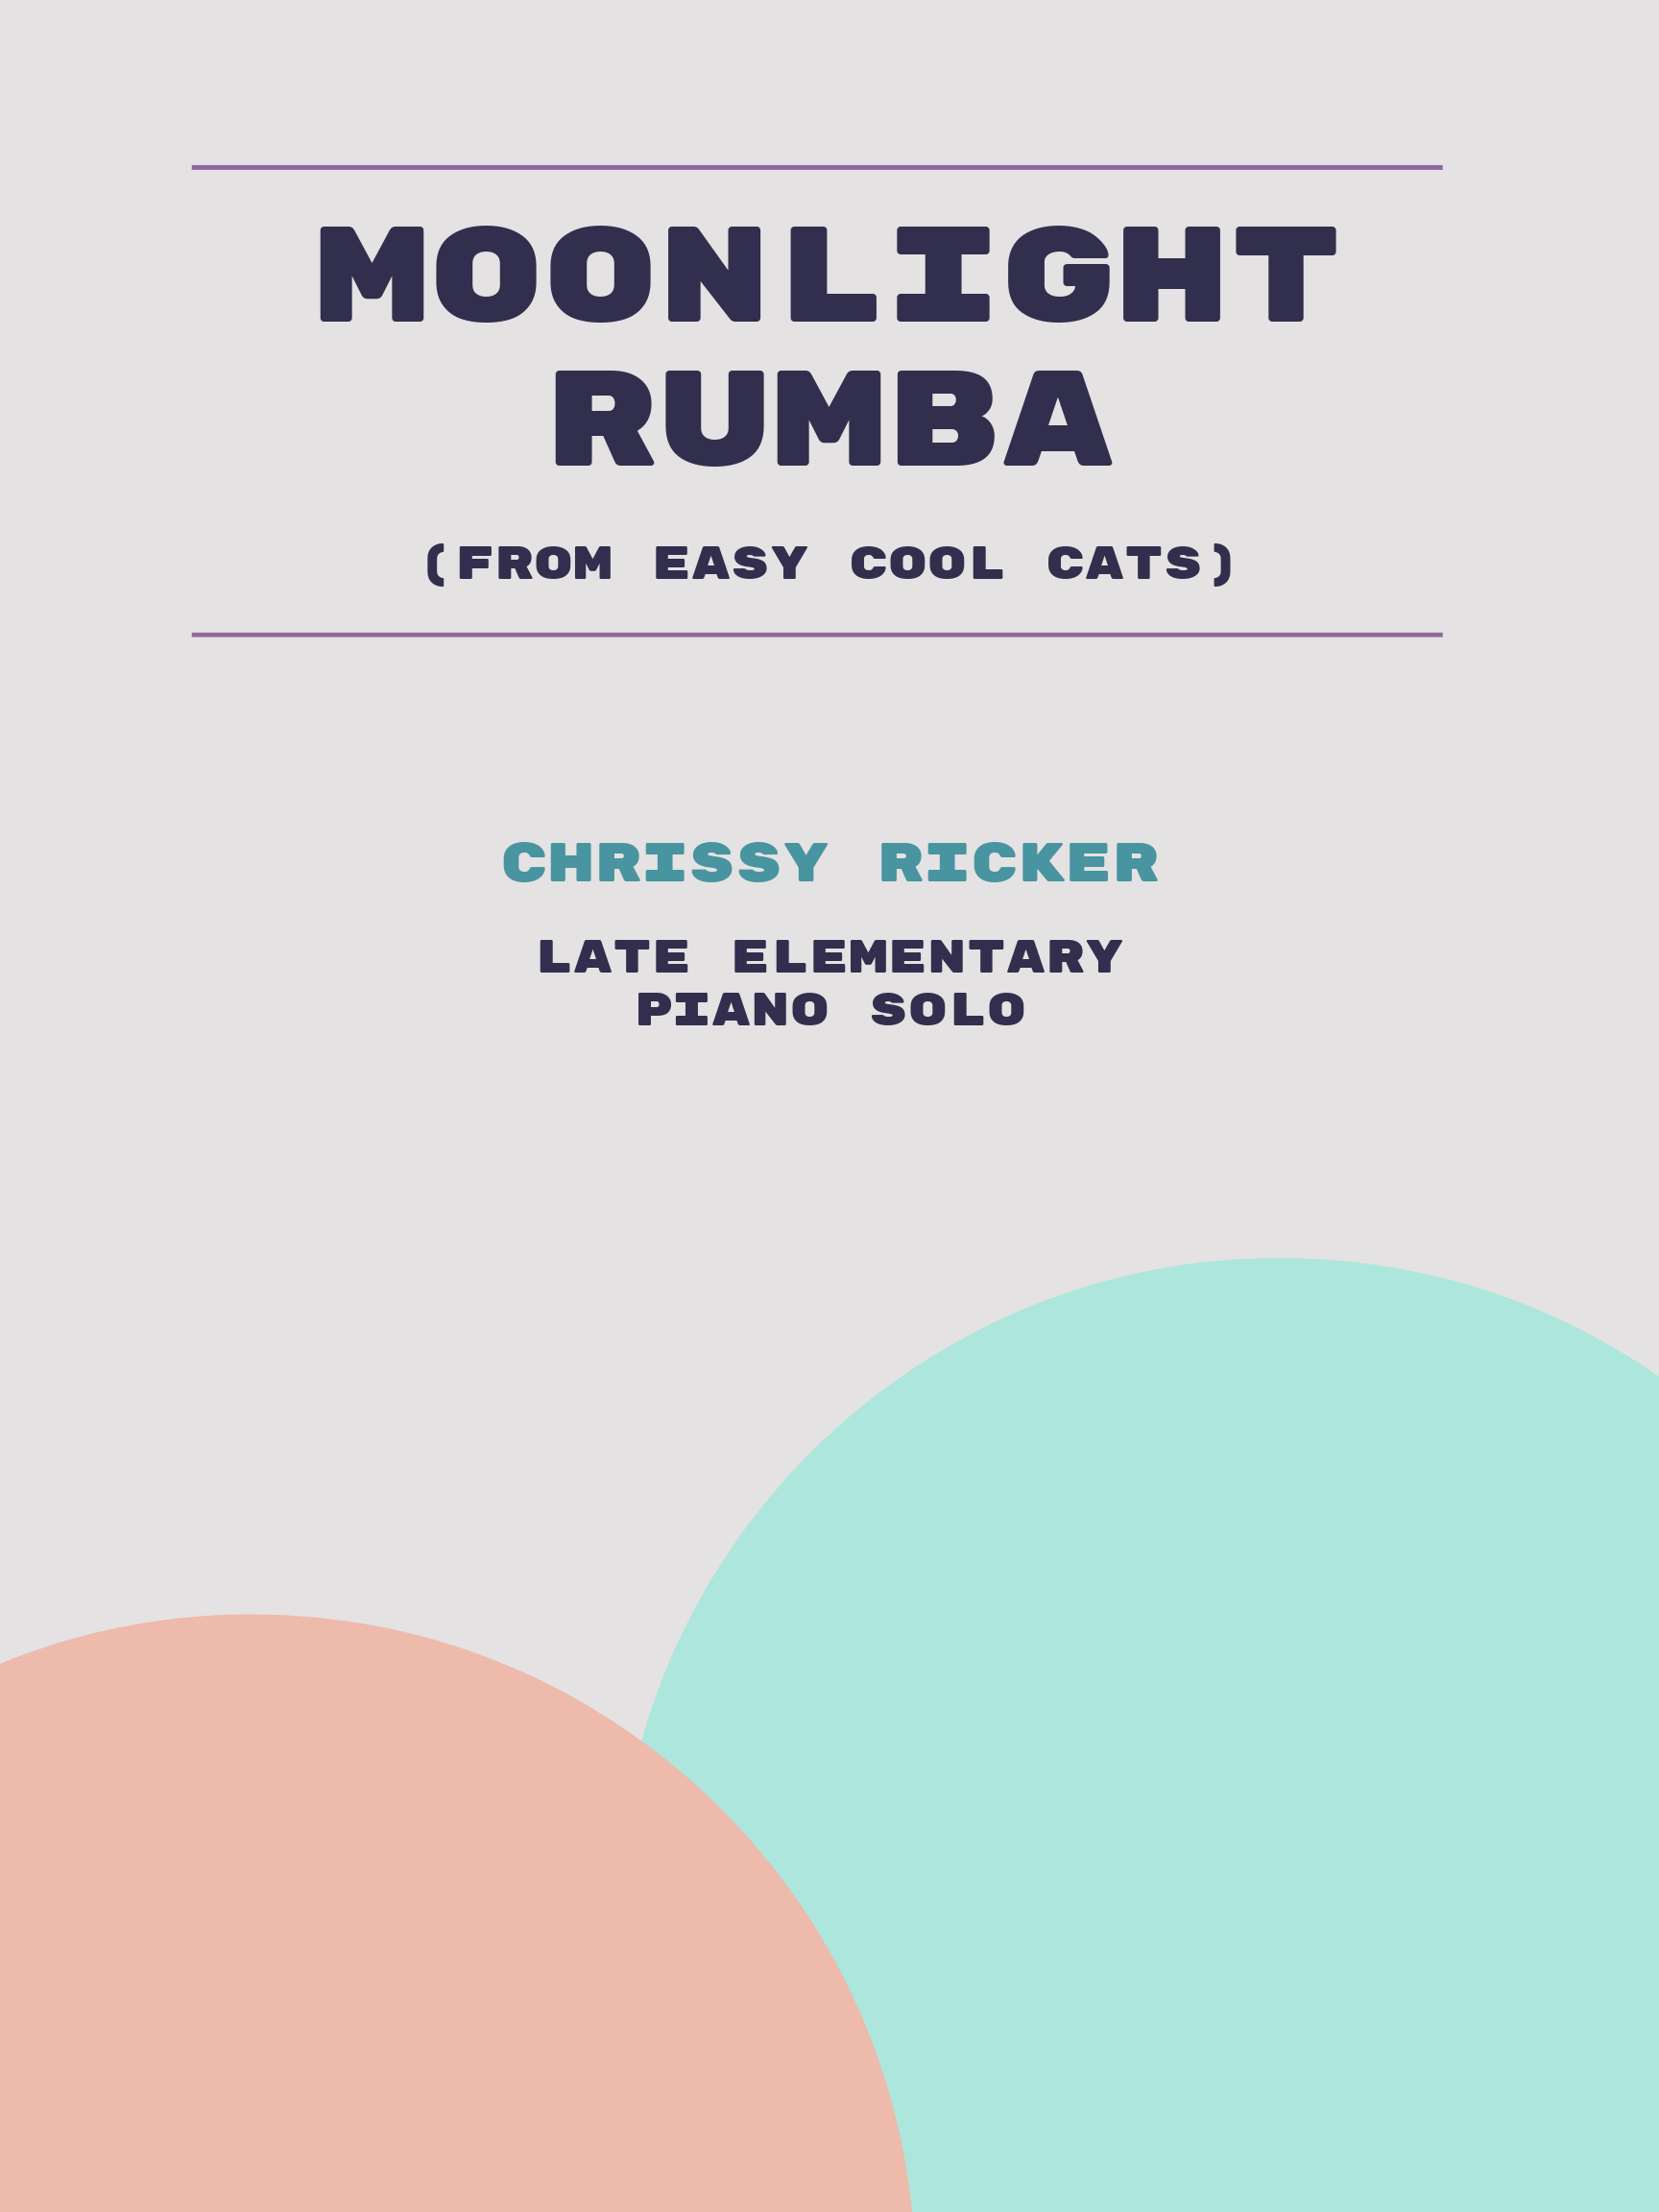 Moonlight Rumba by Chrissy Ricker